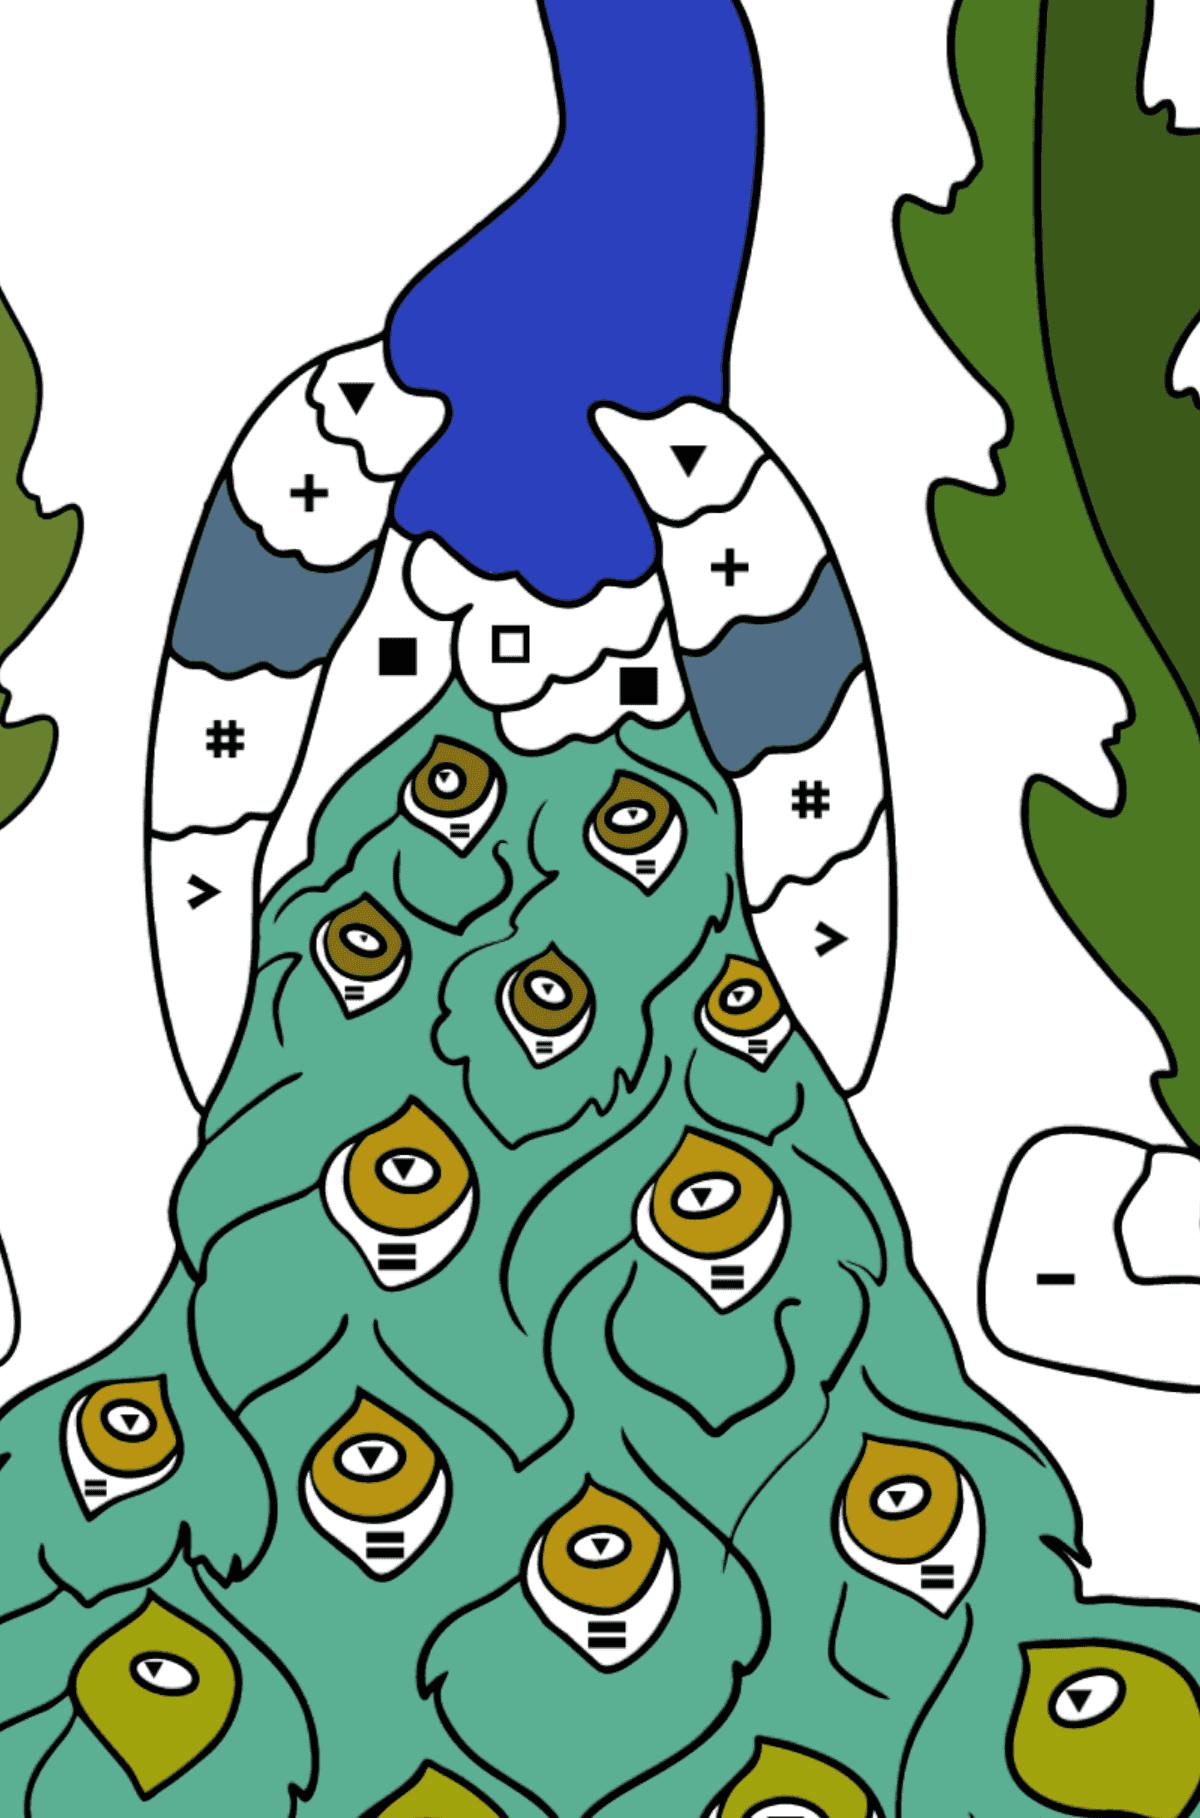 A Peacock Coloring Page - Coloring by Symbols for Kids